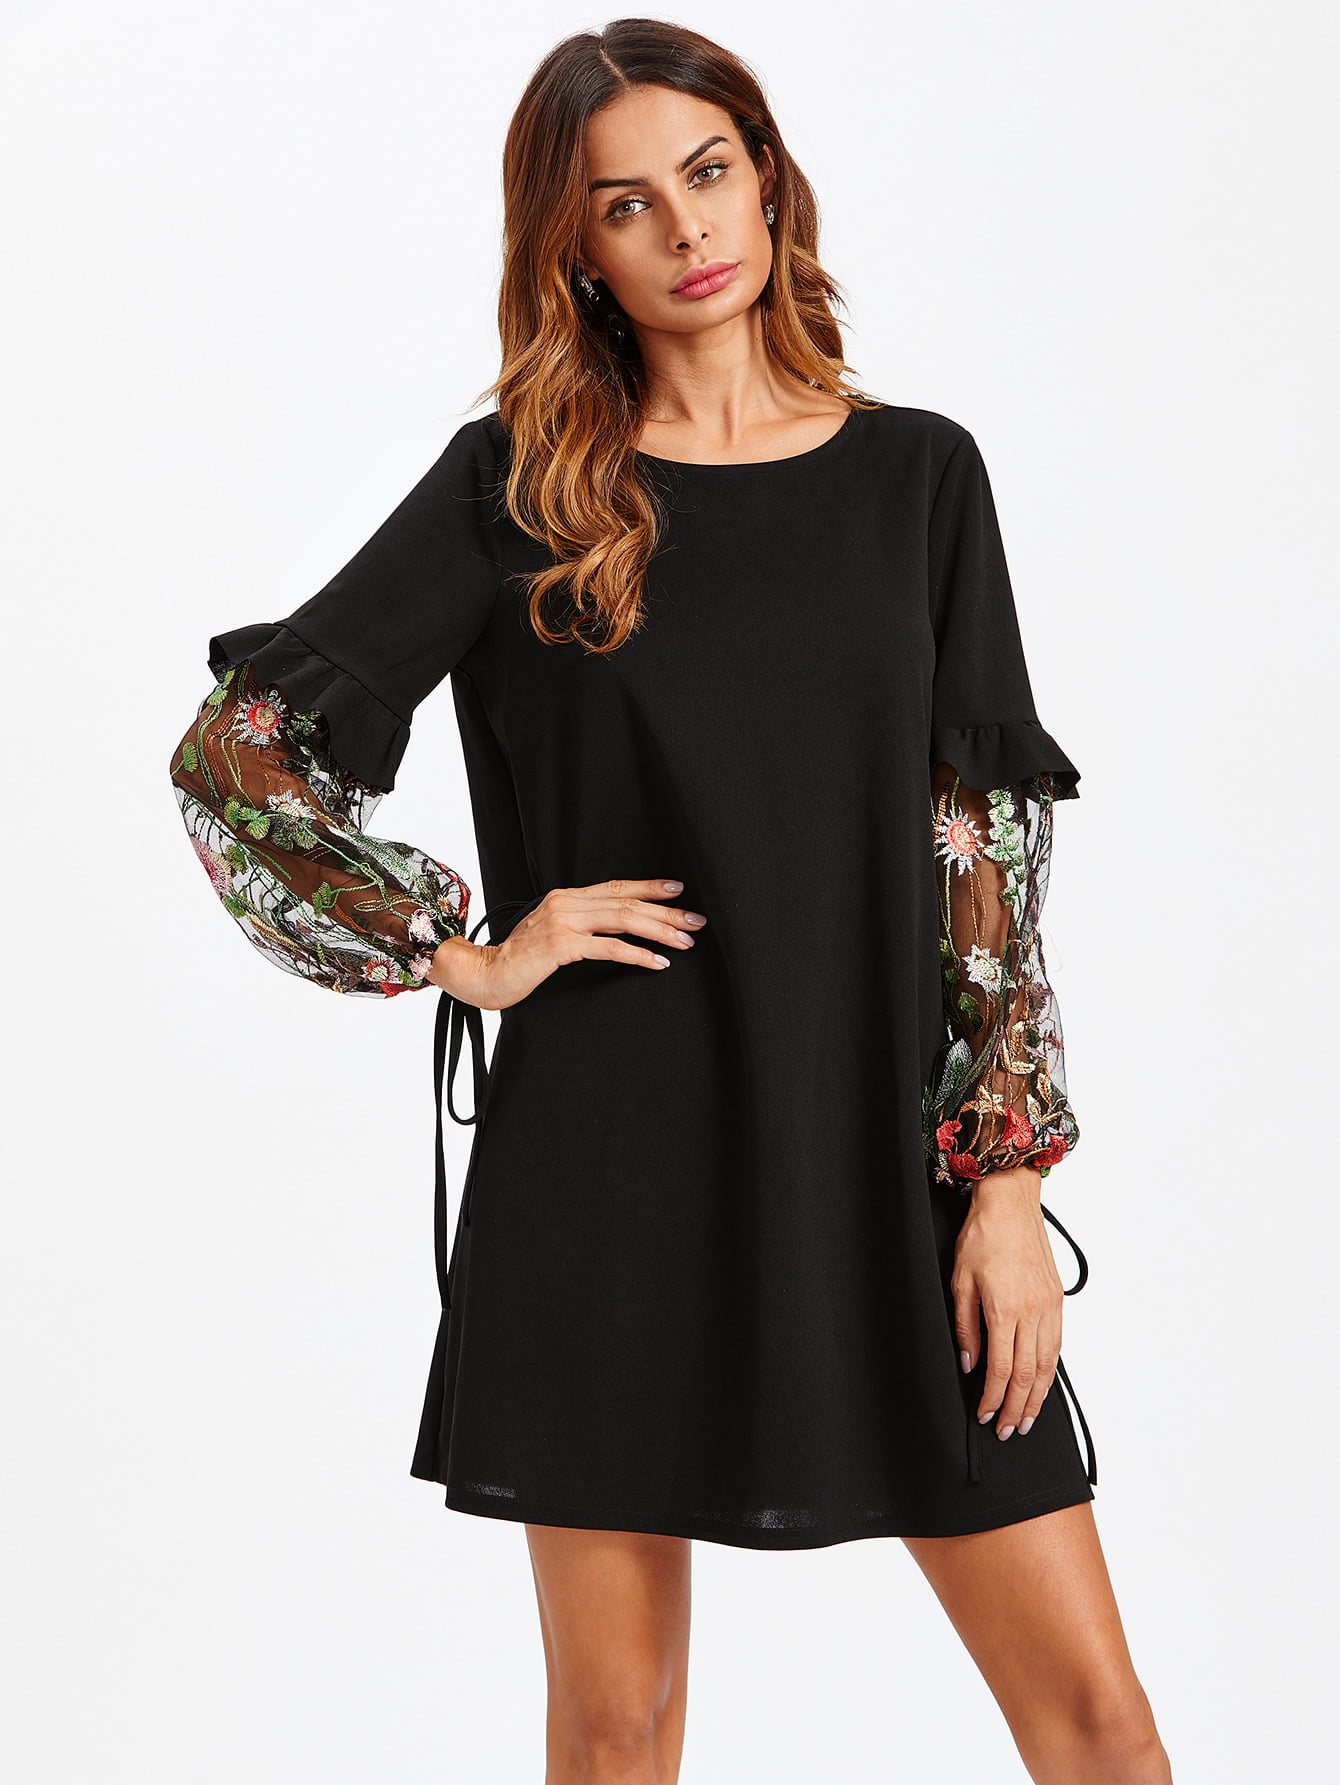 Contrast Embroidery Mesh Tied Sleeve Frill Detail Dress pearl detail frill off shoulder dress